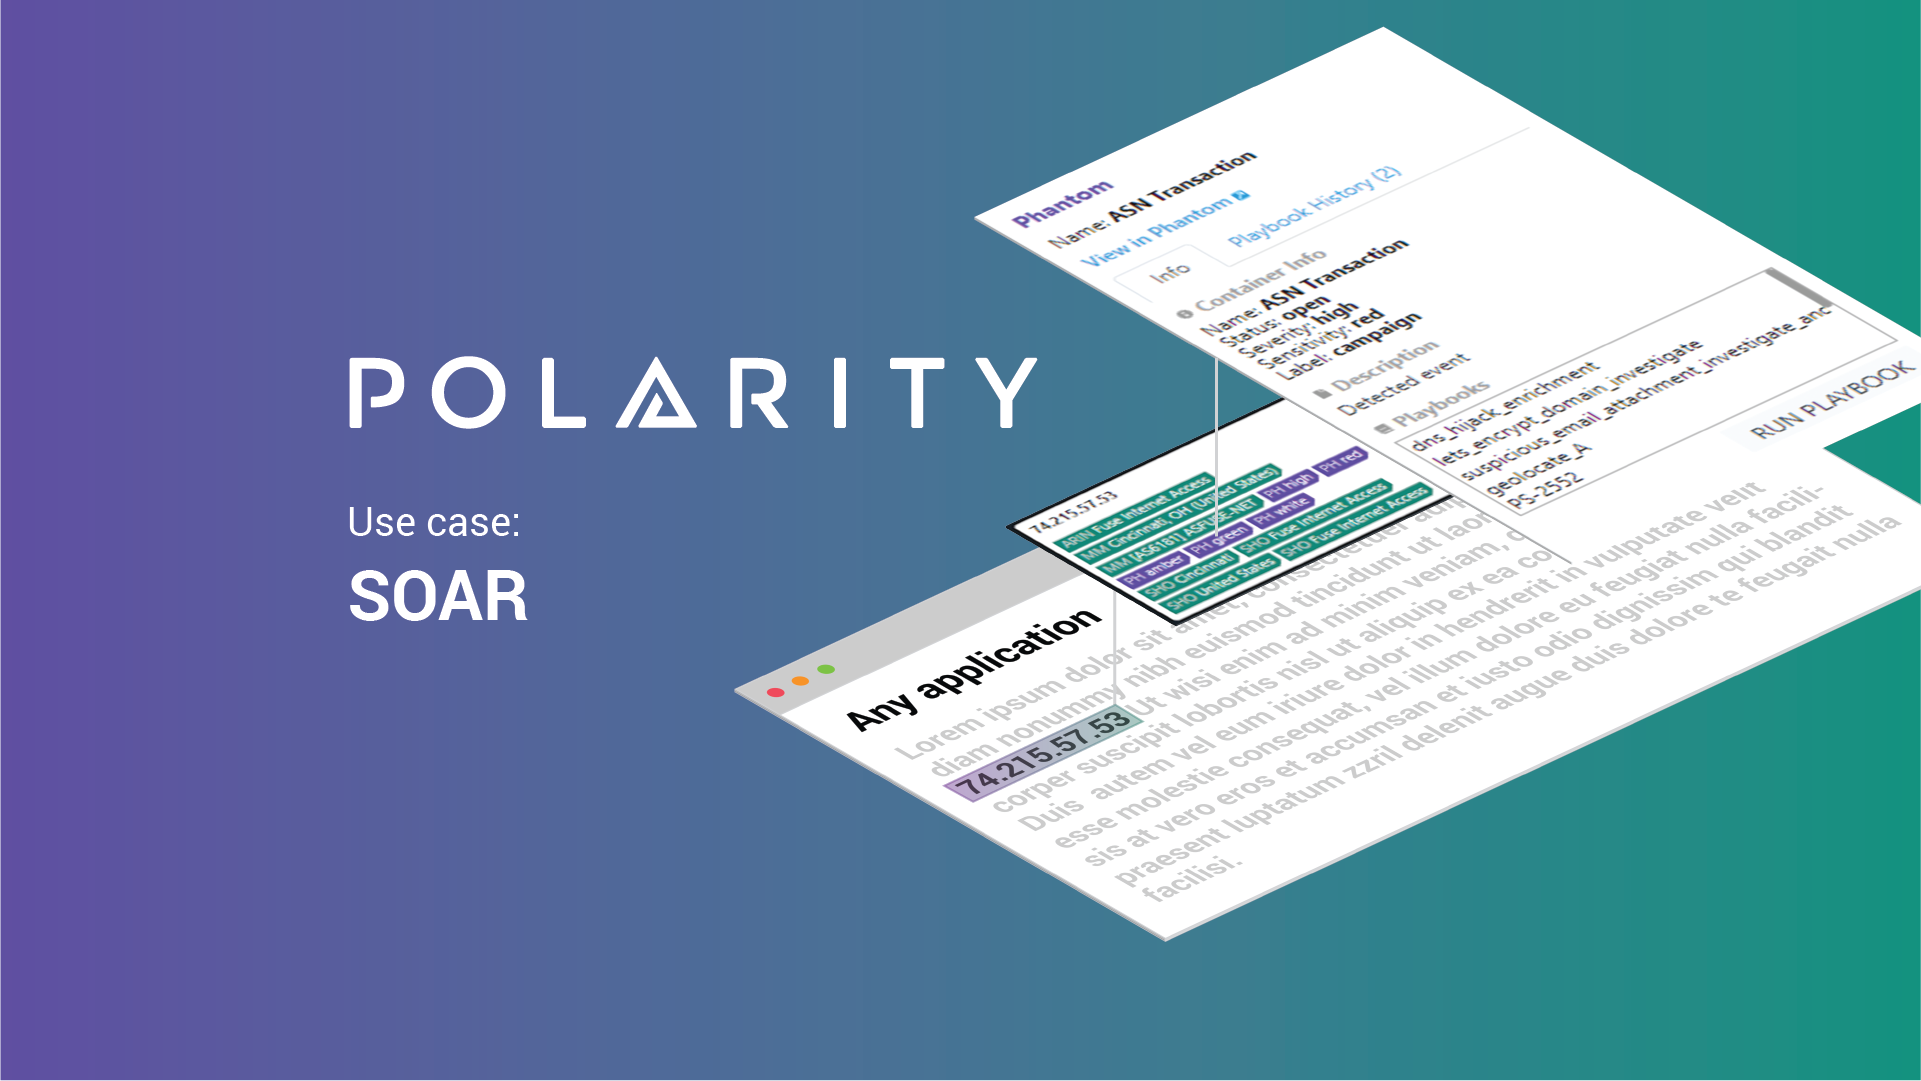 SOAR Higher with Polarity cover image